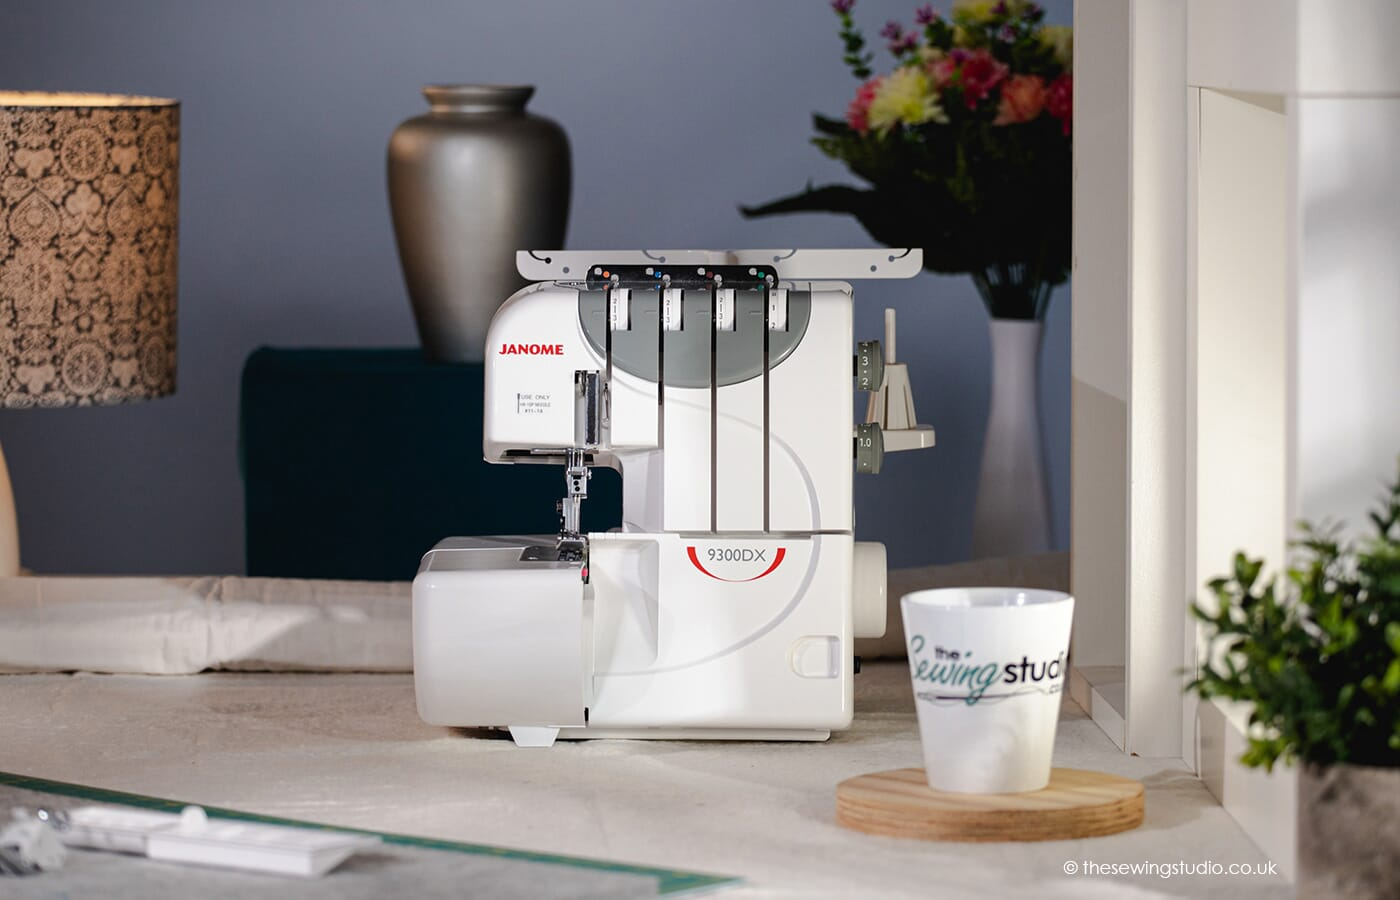 Janome 9300DX Overlocker Machine in a Sewing Room